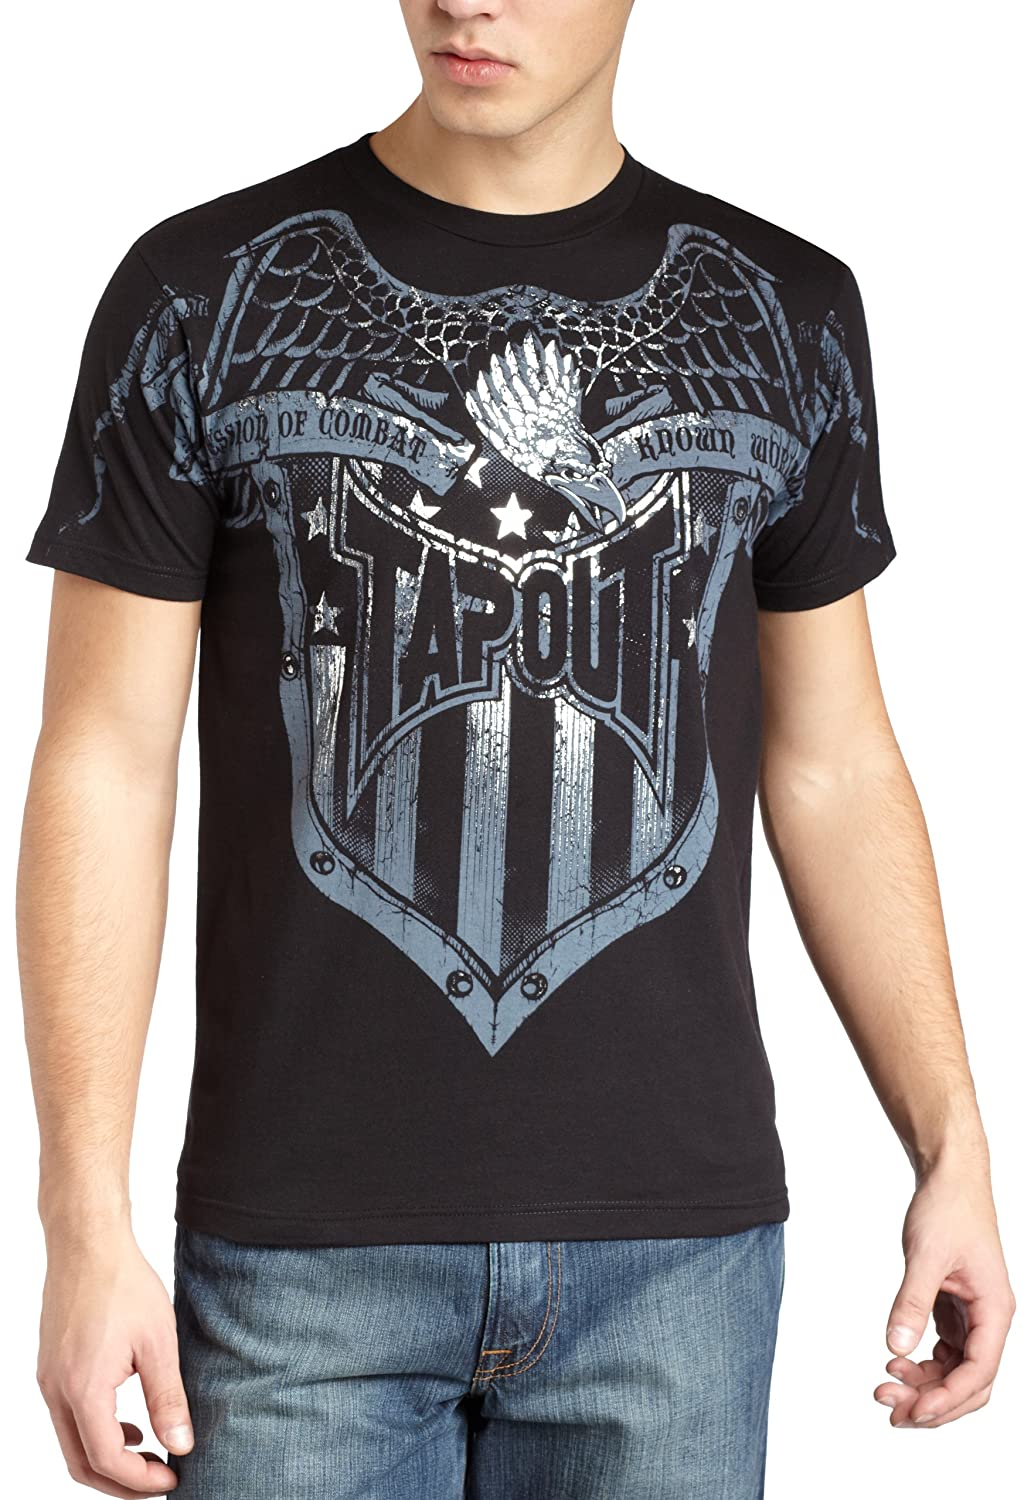 Tapout clothing has fitness at the core which is mirrored in the combat construction and design. Related categories. Refine Refine & Sort Sort Rank. Recent. Discount (High To Low) Discount % (High To Low) Price (Low To High) Price (High To Low) Brand (A To Z) Brand (Z To A) Gender. Click to close.